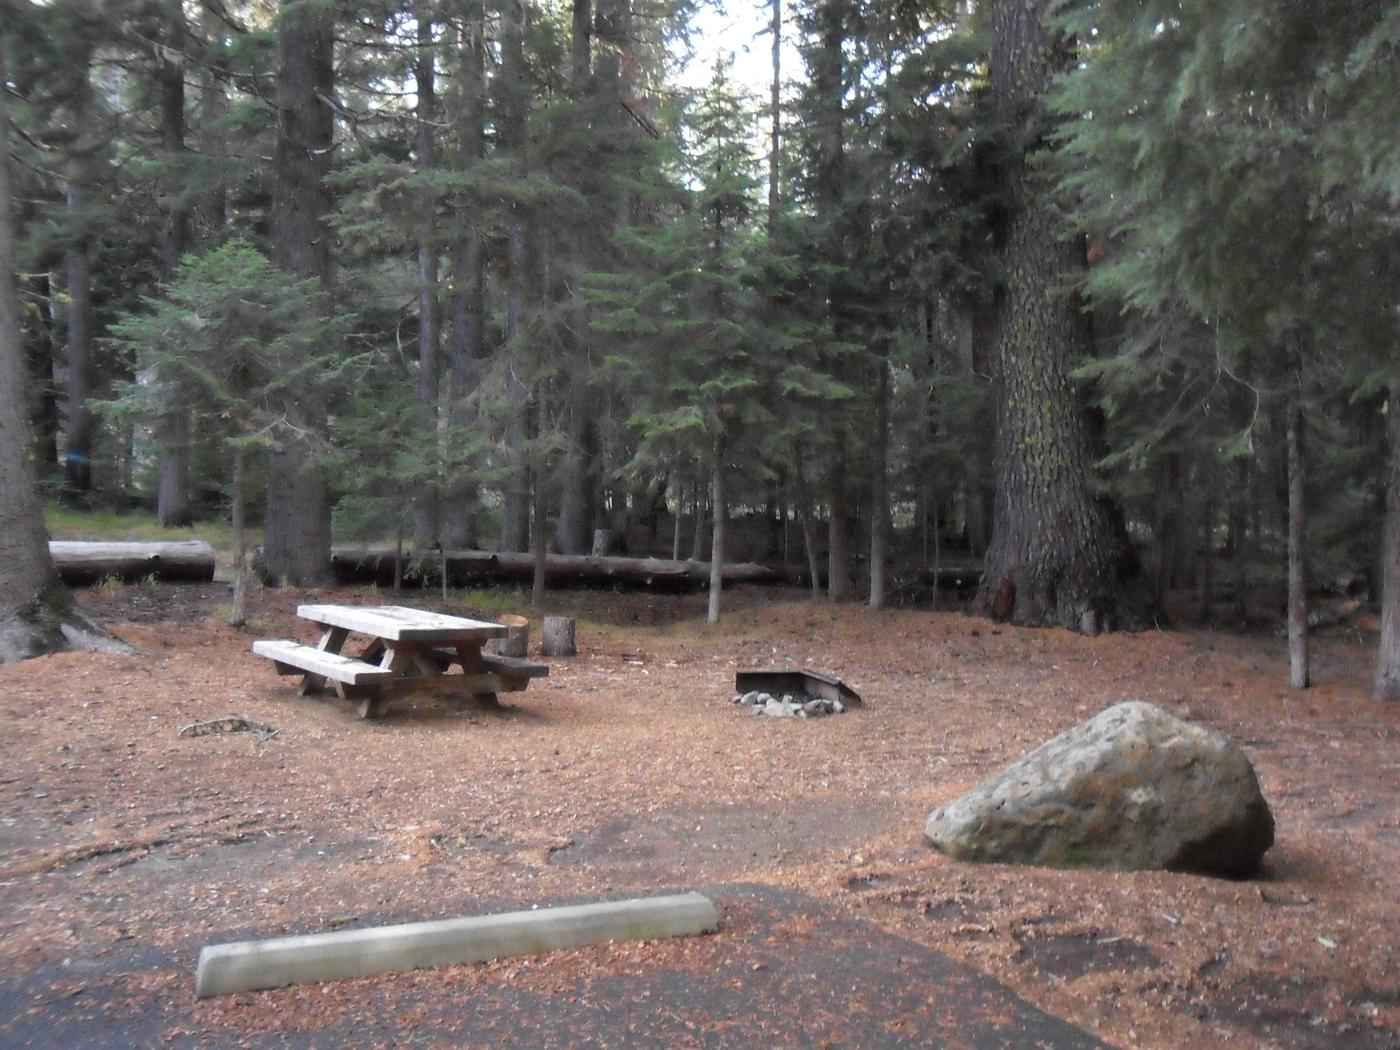 Flat campsite with one picnic table and fire ring.C-12